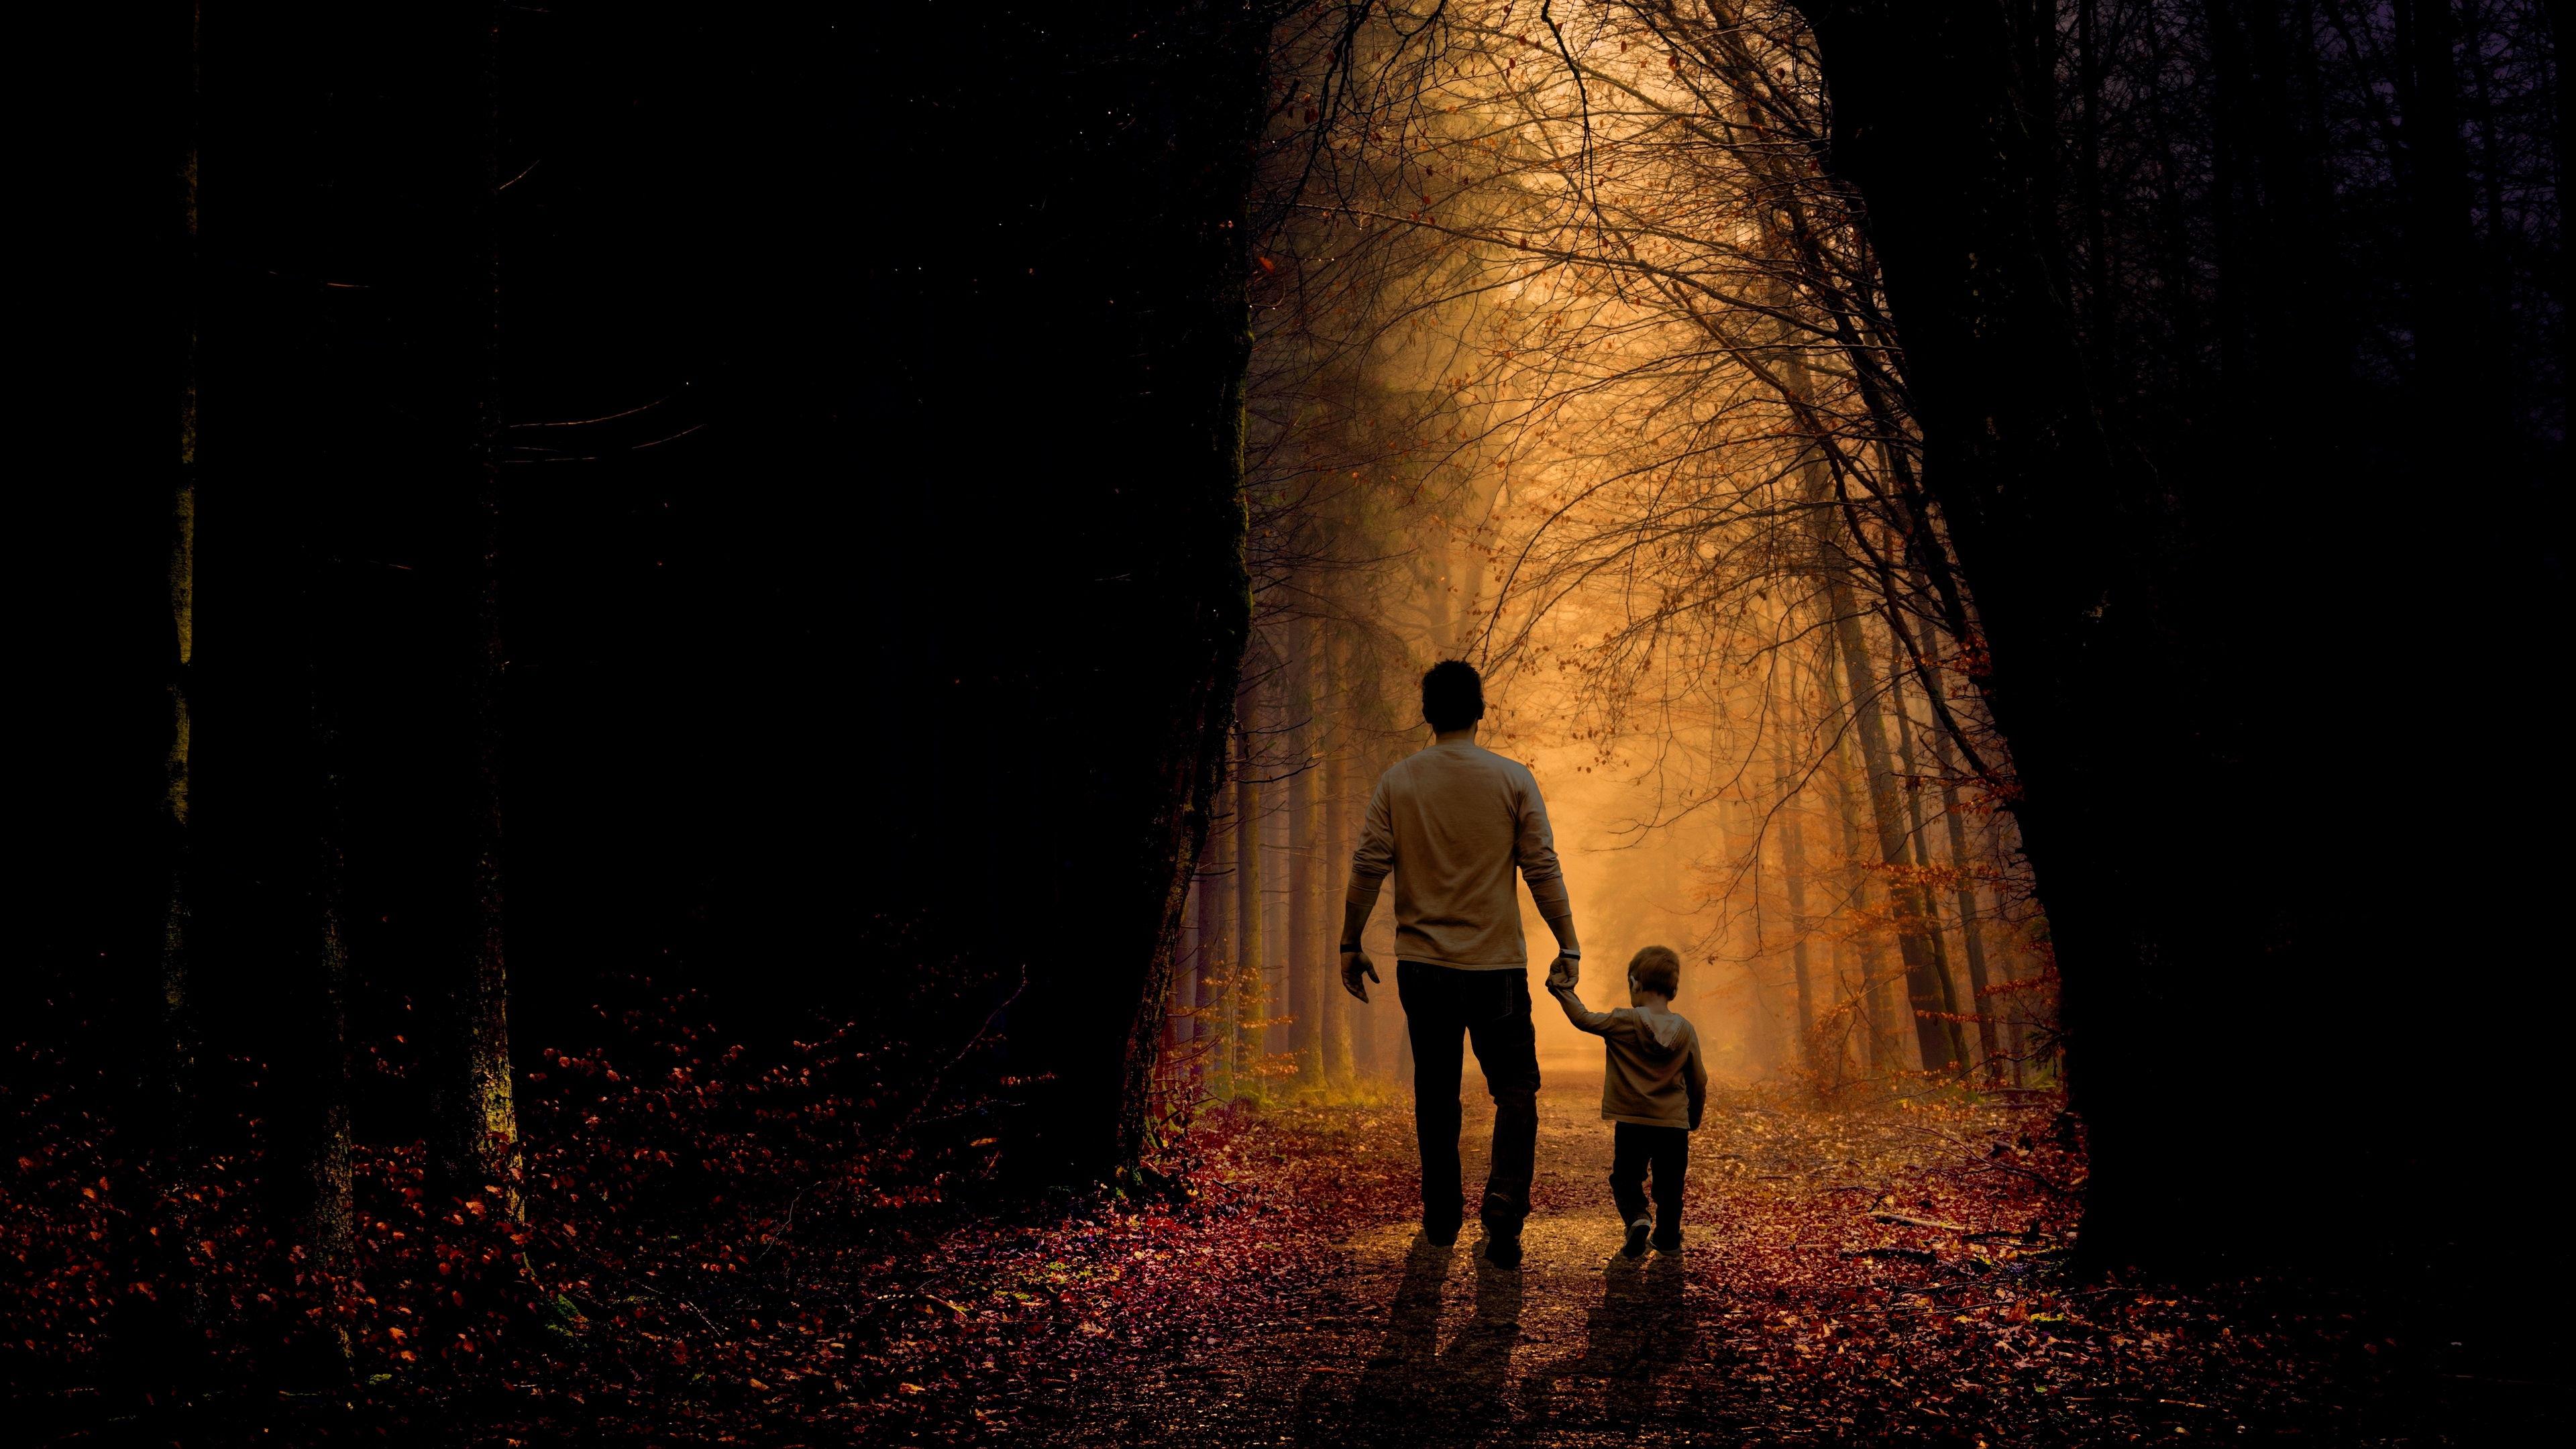 father son family child forest 4k 1540576112 - father, son, family, child, forest 4k - Son, Father, Family